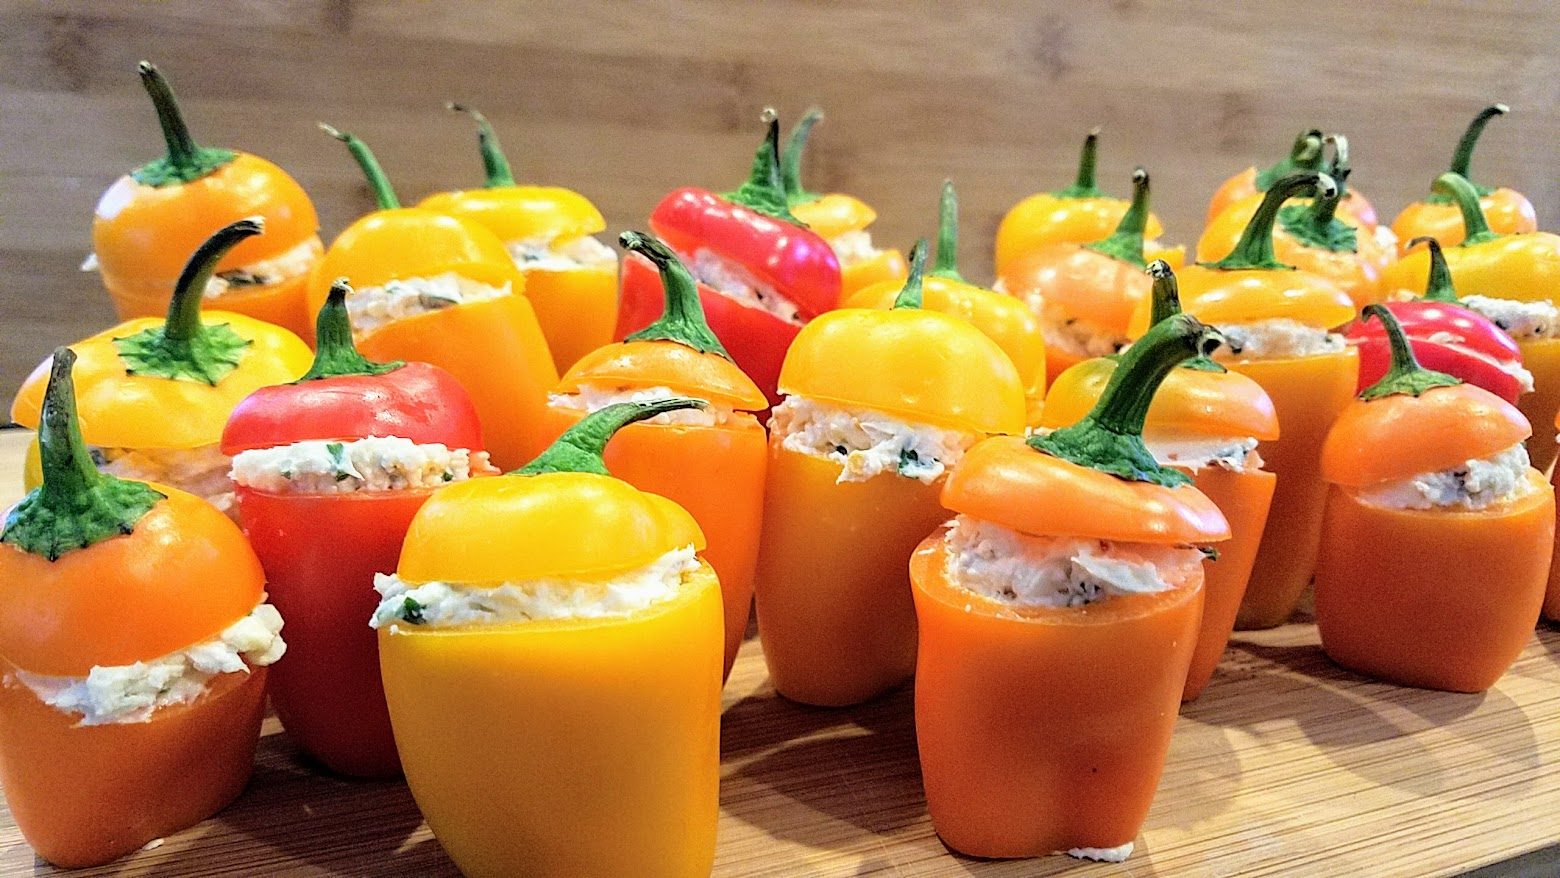 Recipe for Cheese Stuffed Mini Peppers, easy peasy and are adorable because of the way you can get multiple colors with the orange, yellow and red which are so cheerful, and then presentation wise the way they stand up in little rows or formations so bravely